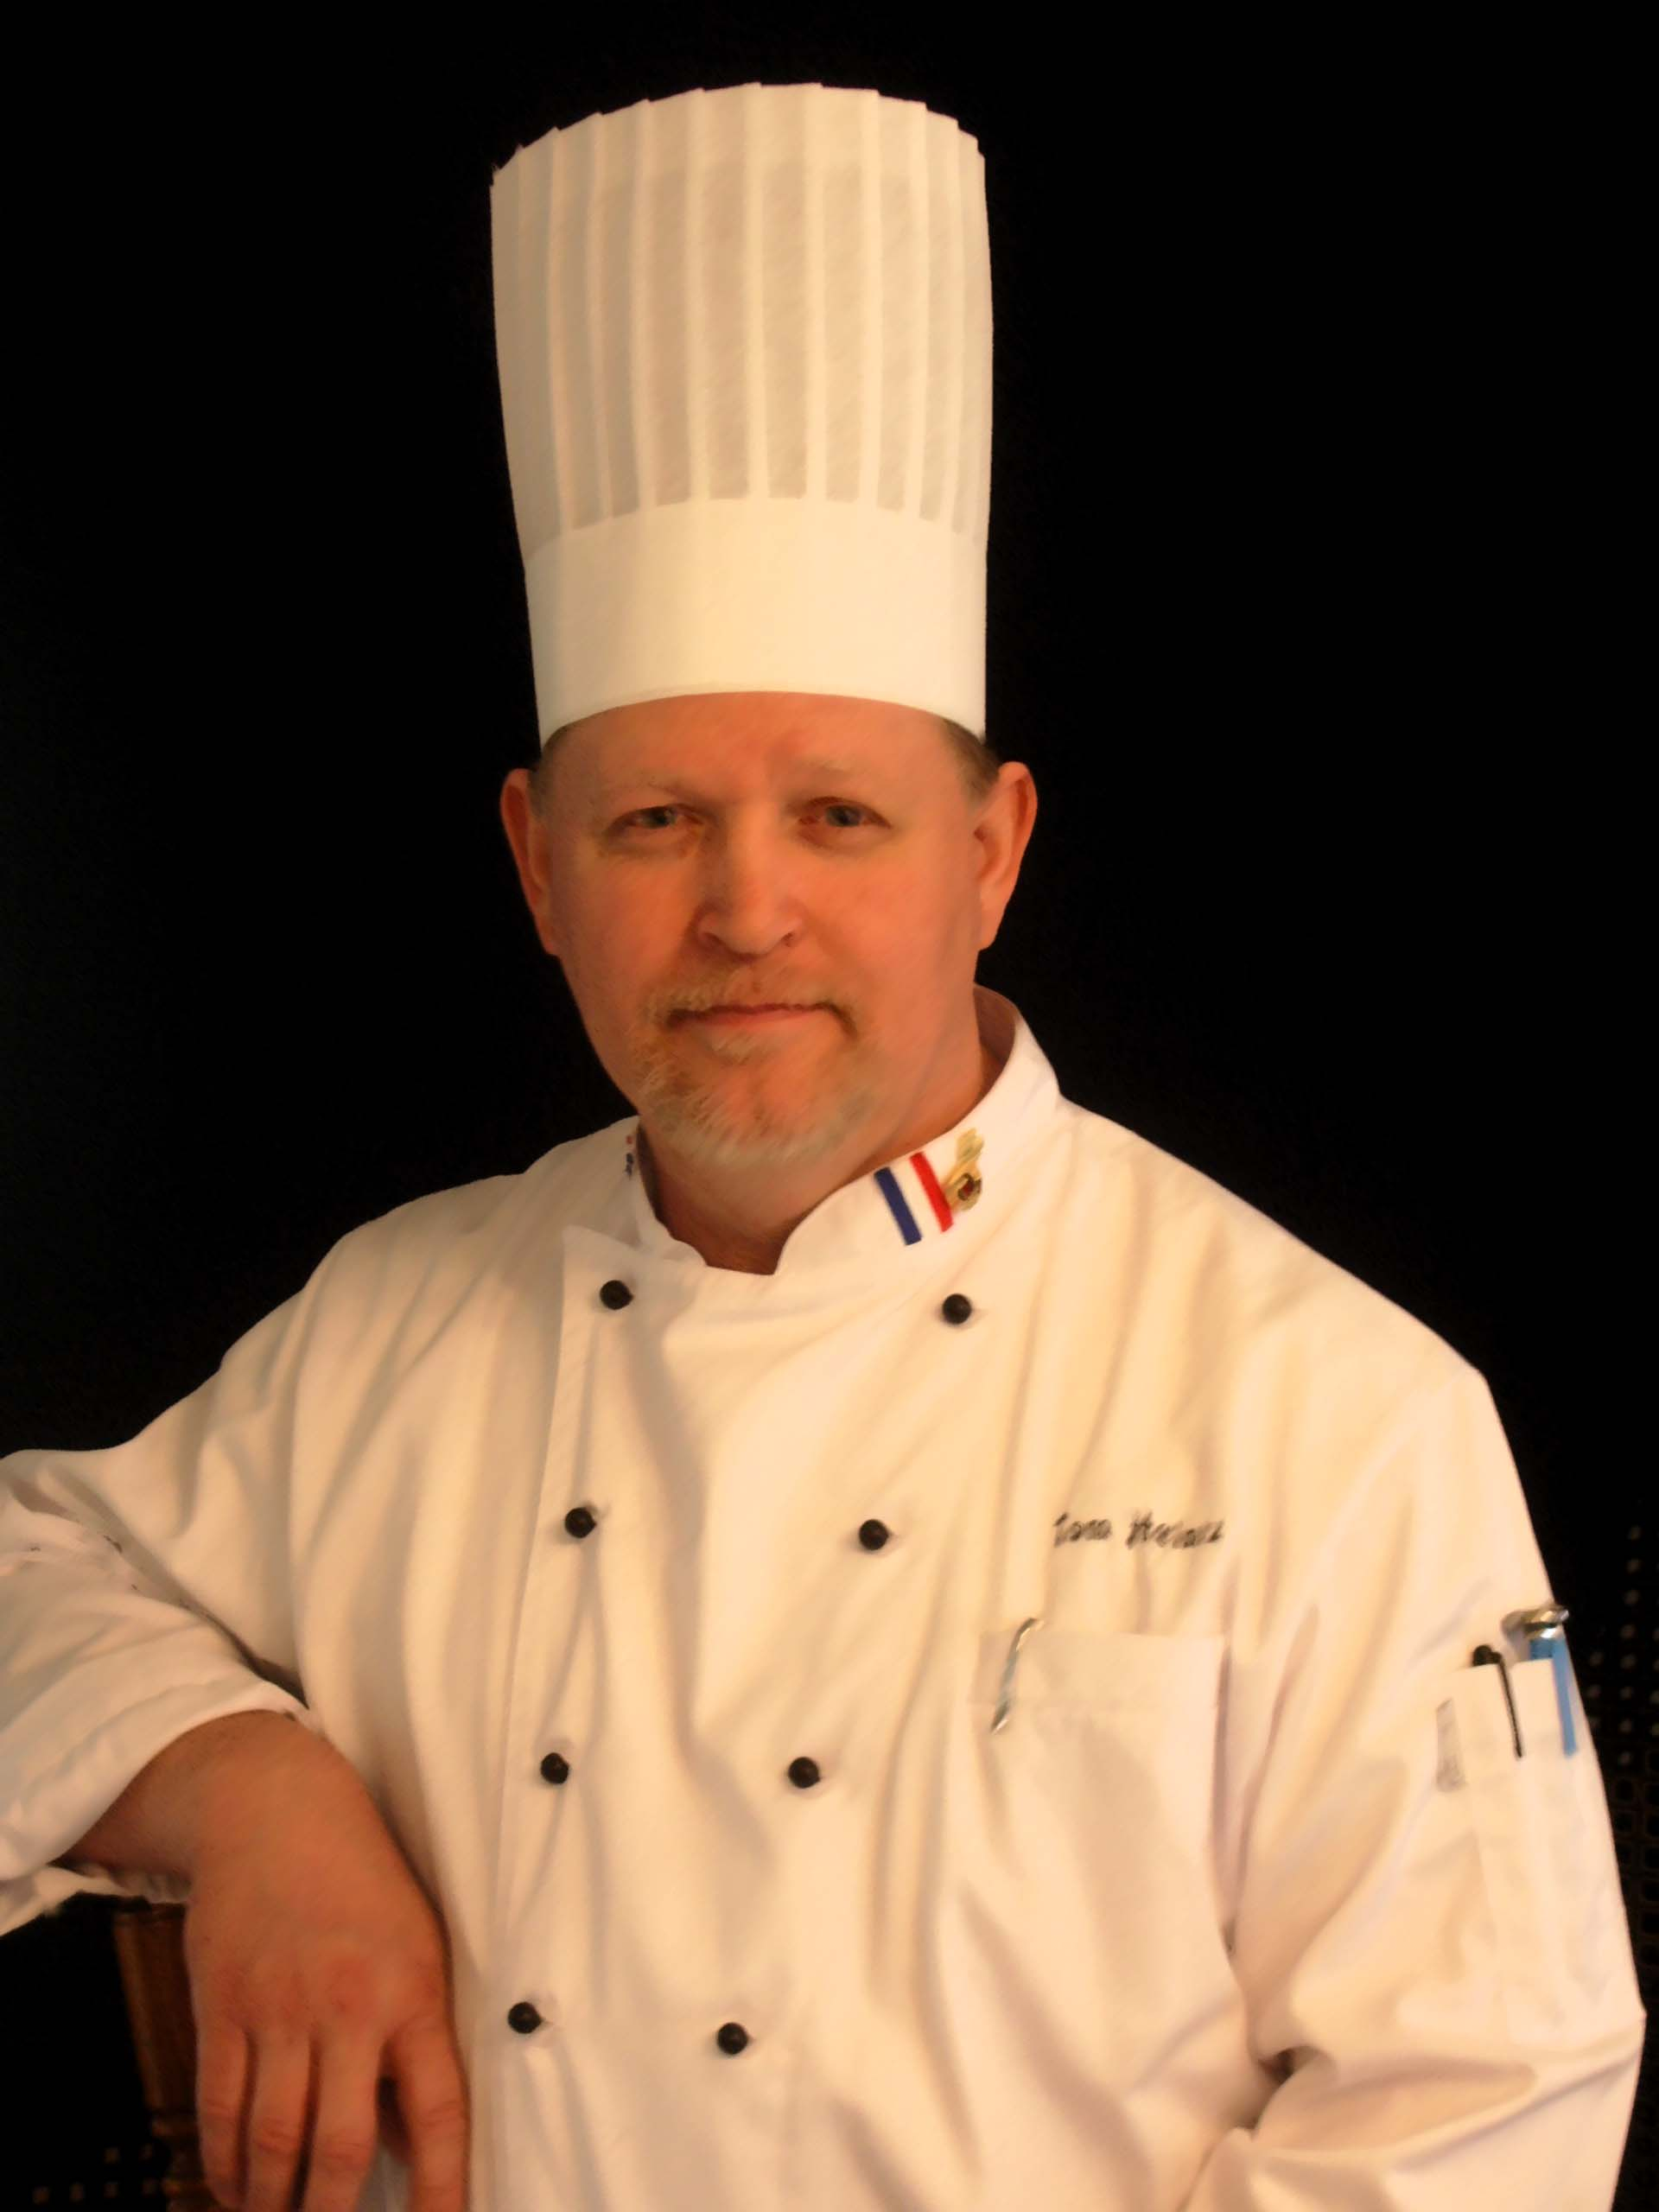 Chef Tom Heintz